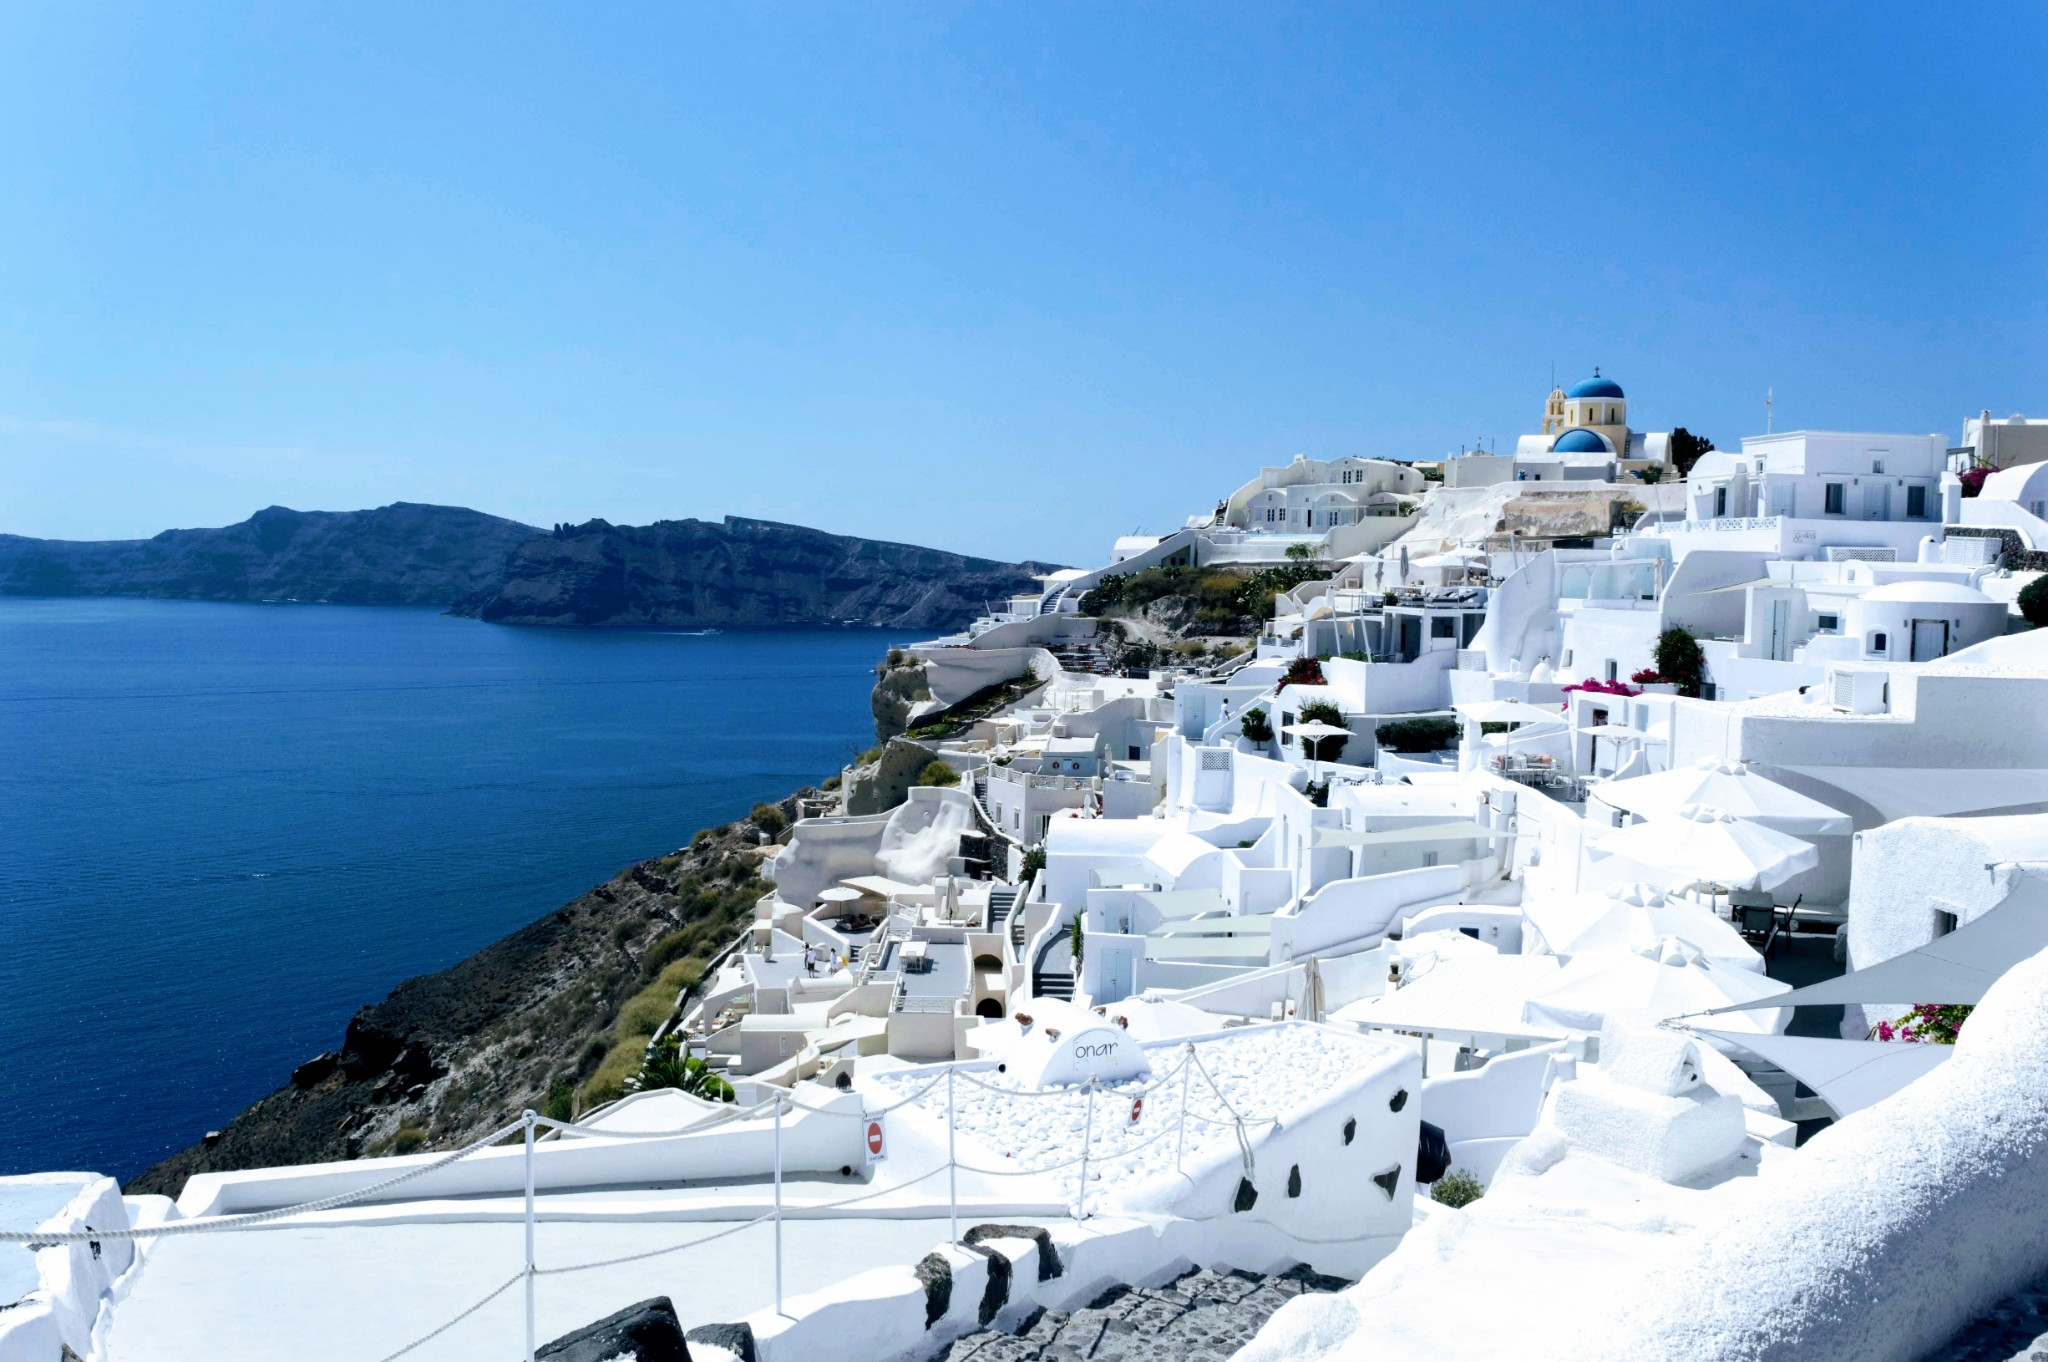 Famous Oia Blue and white buildings - Honeymoon Part 2 - Oia in Santorini Greece is beautiful with its pretty caldera view, sunsets, windmills and quaint pedestrian streets, we headed here for our Honeymoon Part 2! - Greek Island, Europe - Veritru